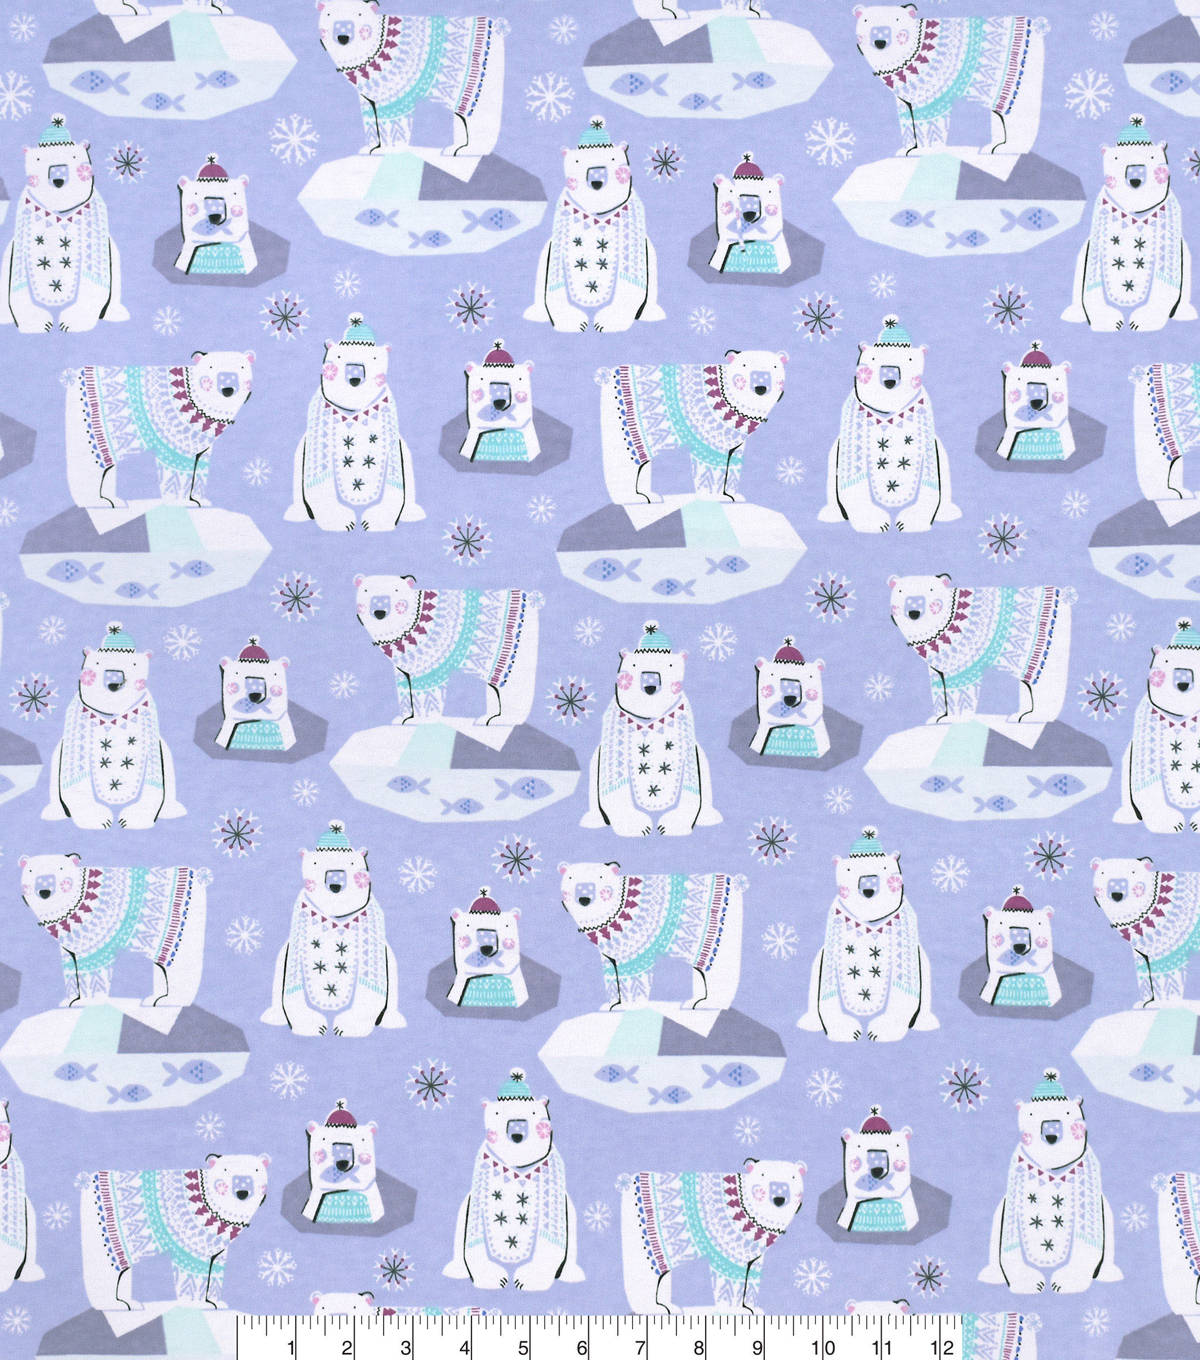 Snuggle Flannel Fabric -Patterened Polar Bear